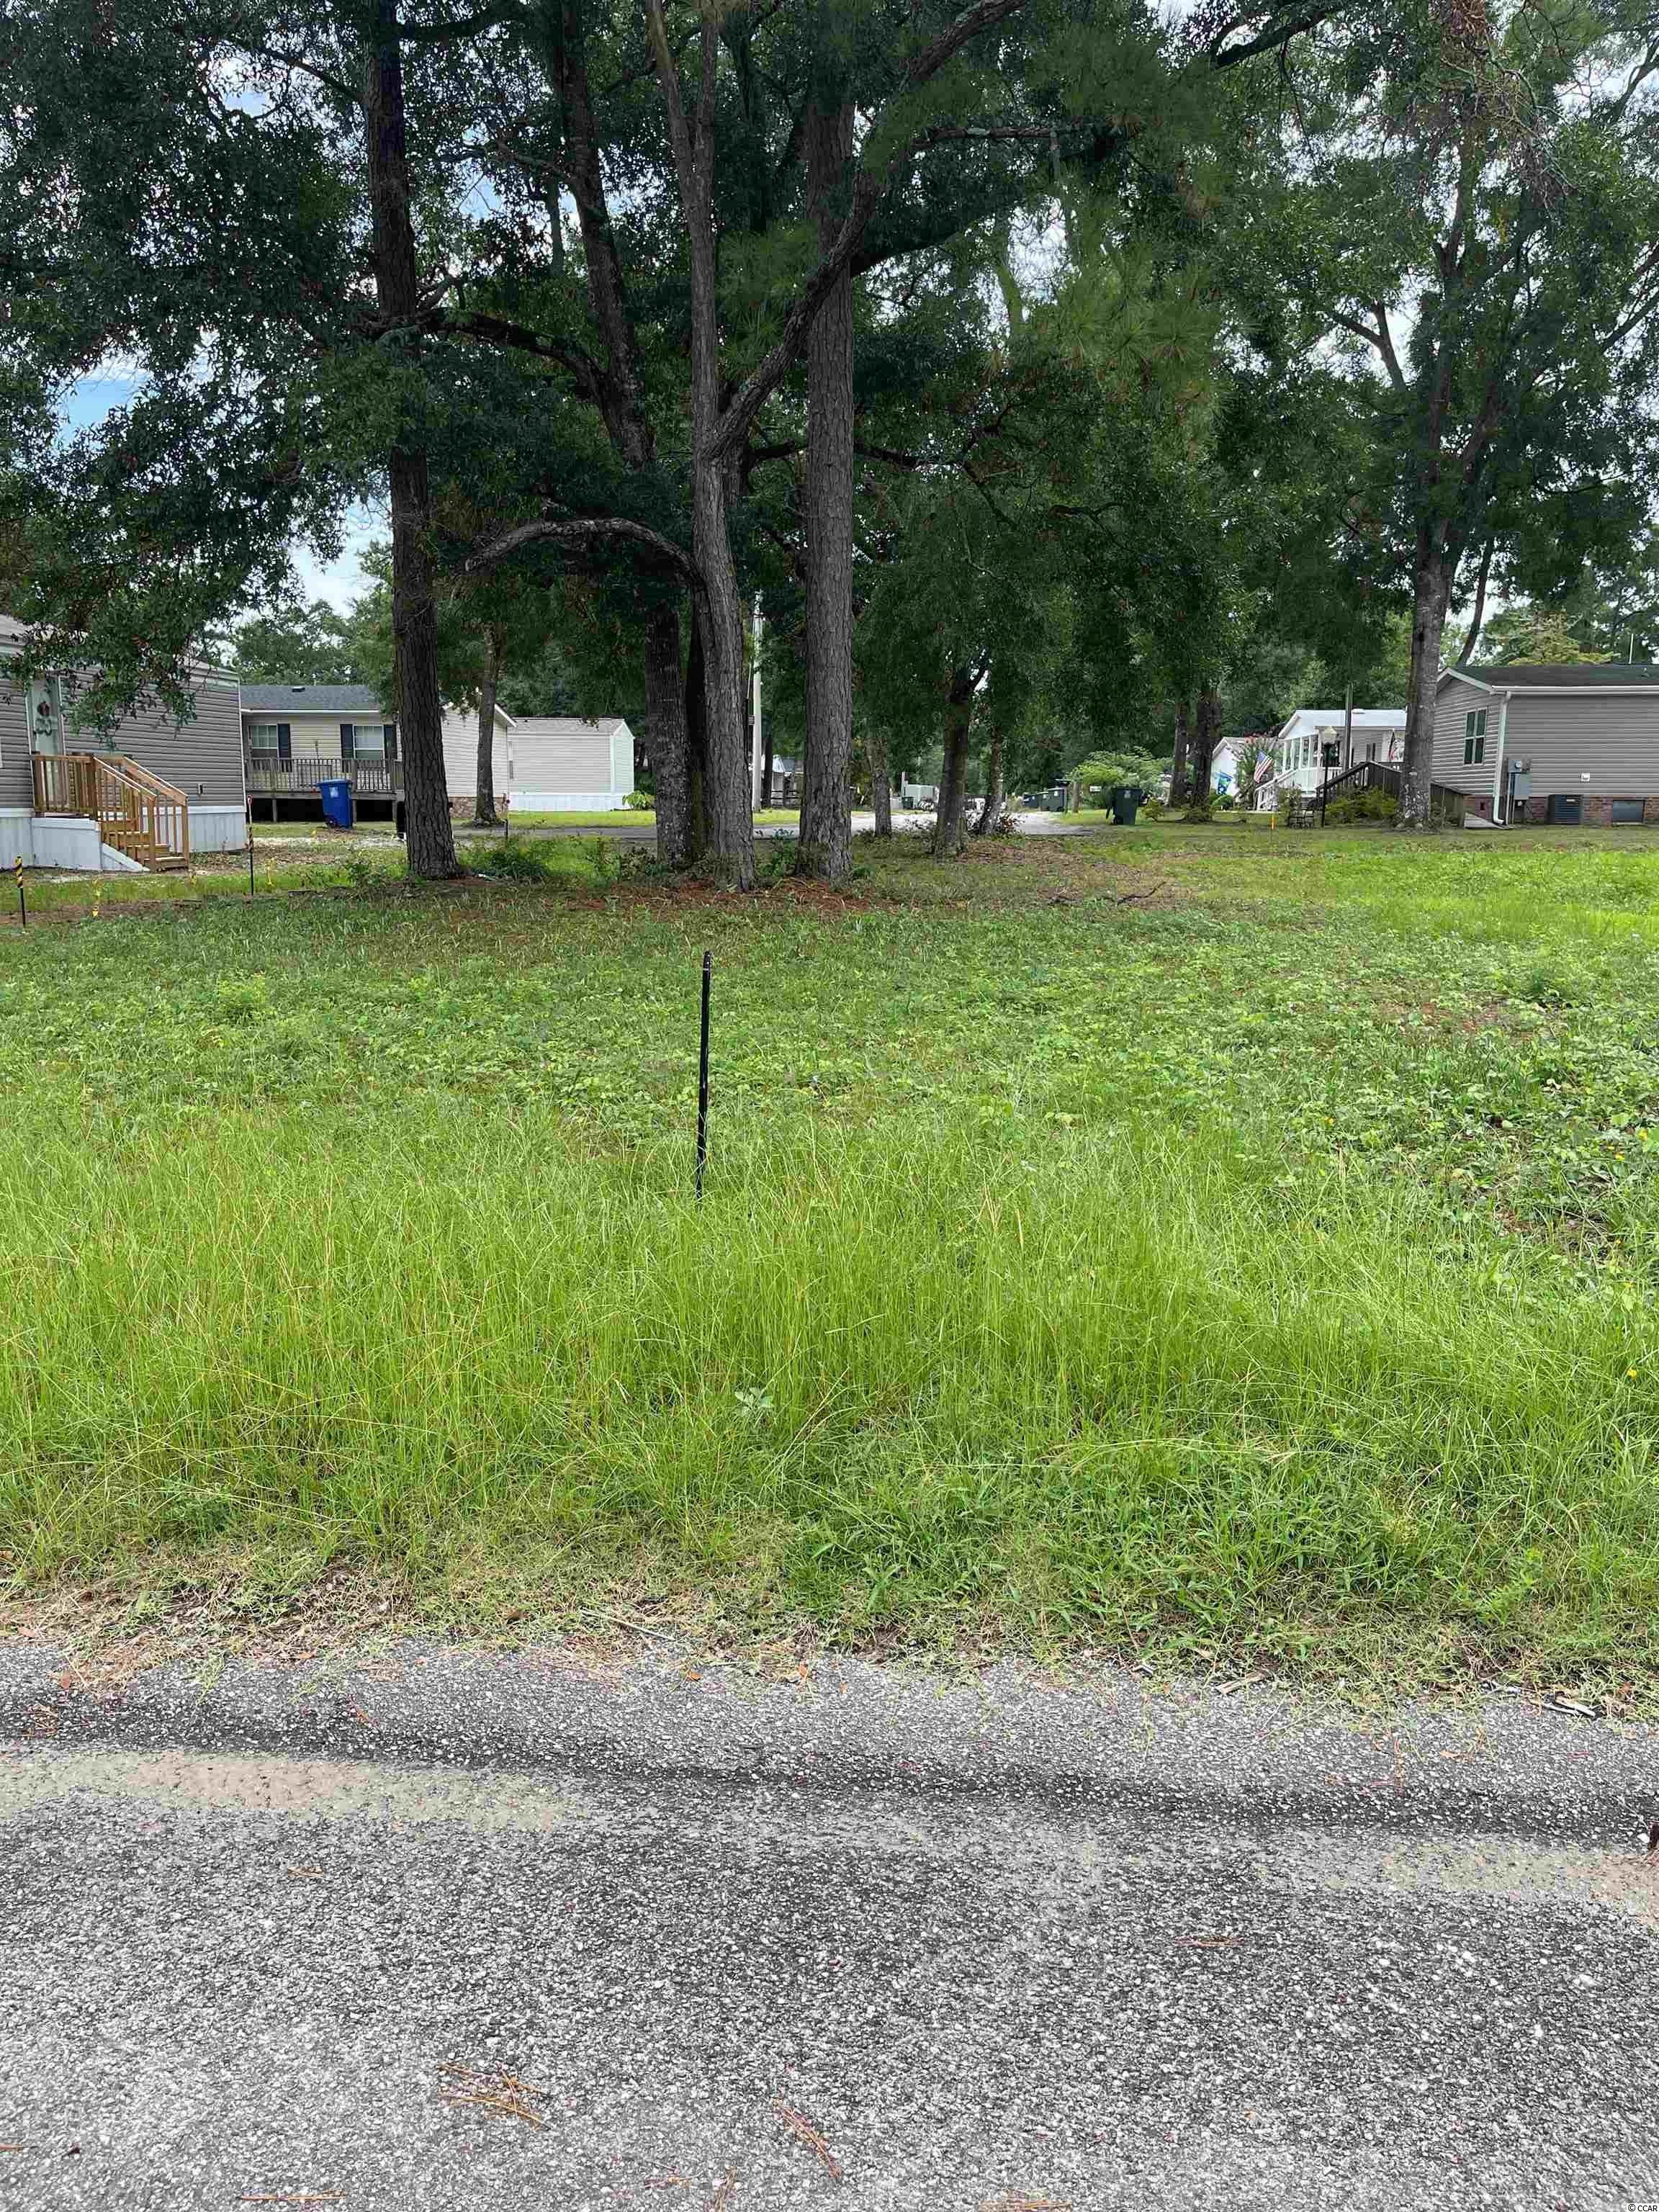 Cleared lot ready for your new home. You can have a mobile home, modular or stick built. Not in a flood zone and NO HOA. The grove is 1.2 miles from the beach on a short golf cart ride. Just a few blocks from the ICW and public boat ramp. A short golf cart ride away from restaurants, bars, shopping and more.